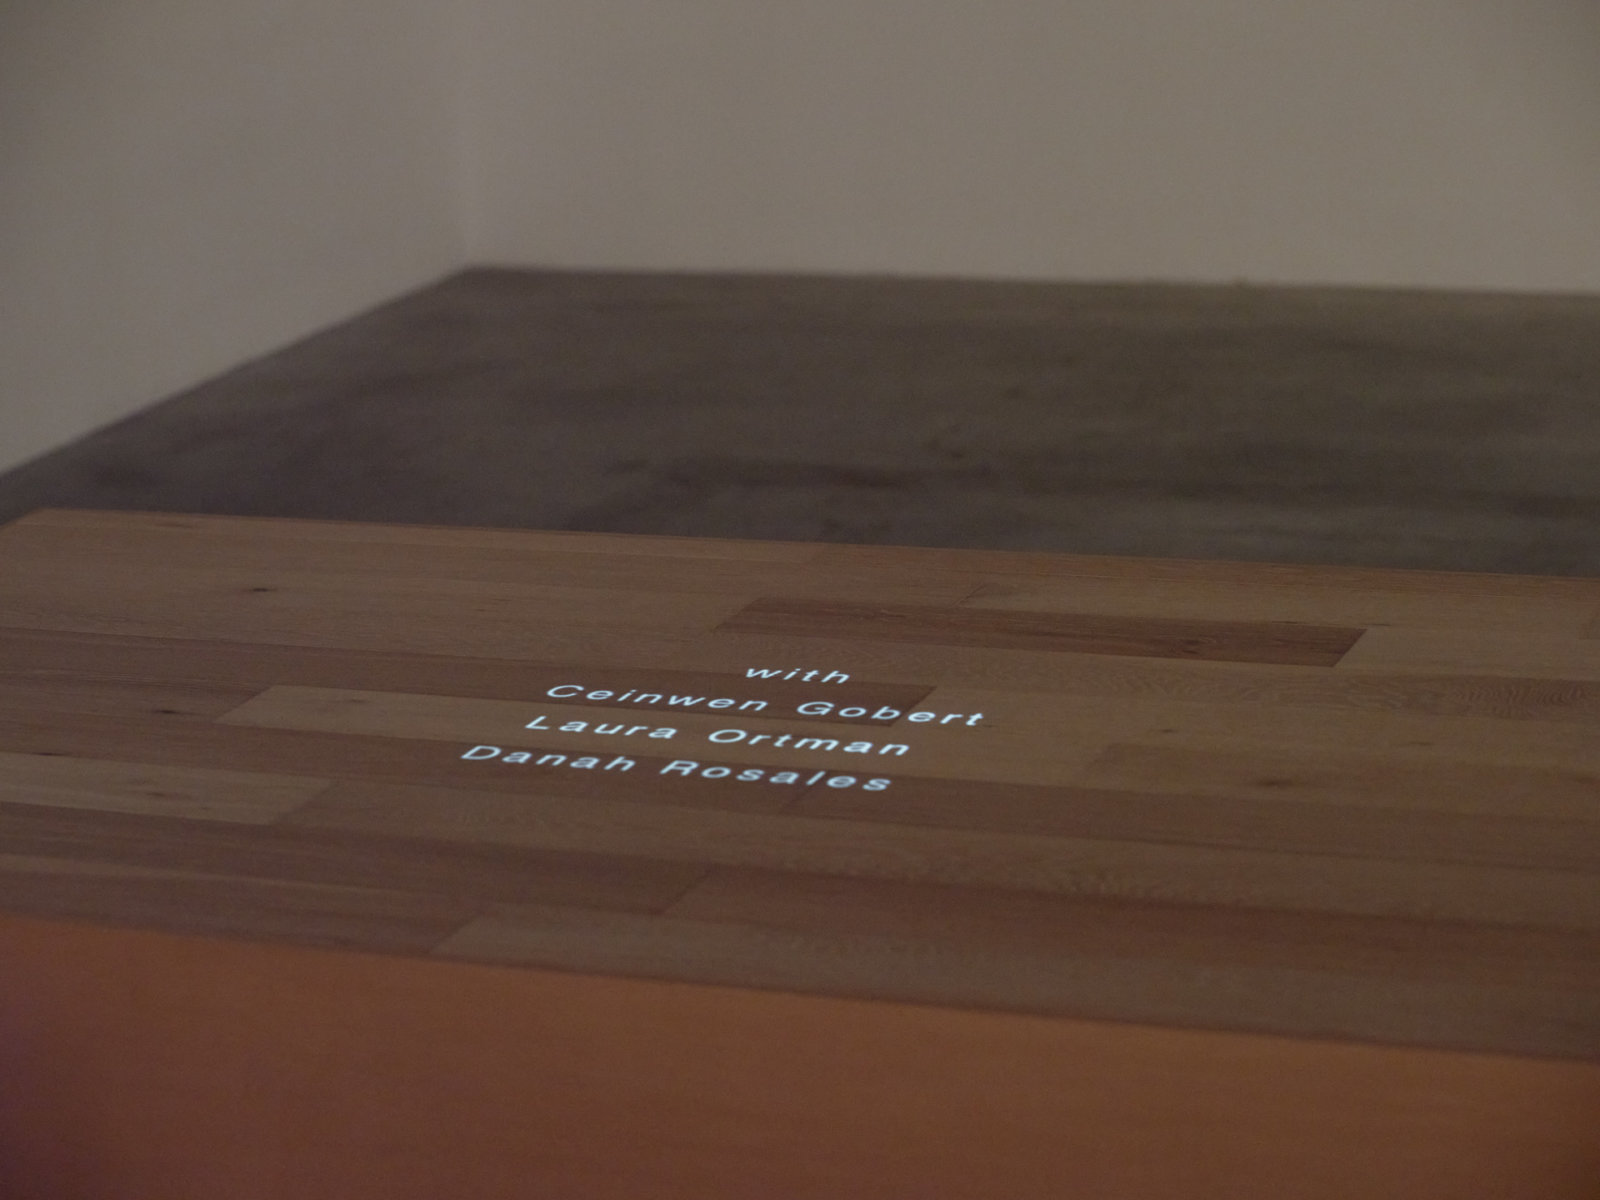 Tanya Lukin Linklater, We wear one another (detail), 2019⁠, site-specific performance projected on wood plinth, 48 x 24 x 85 in. (122 x 61 x 216 cm), 25 minutes, 18 seconds. Installation view, Soundings, Morris and Helen Belkin Art Gallery, Vancouver, 2020